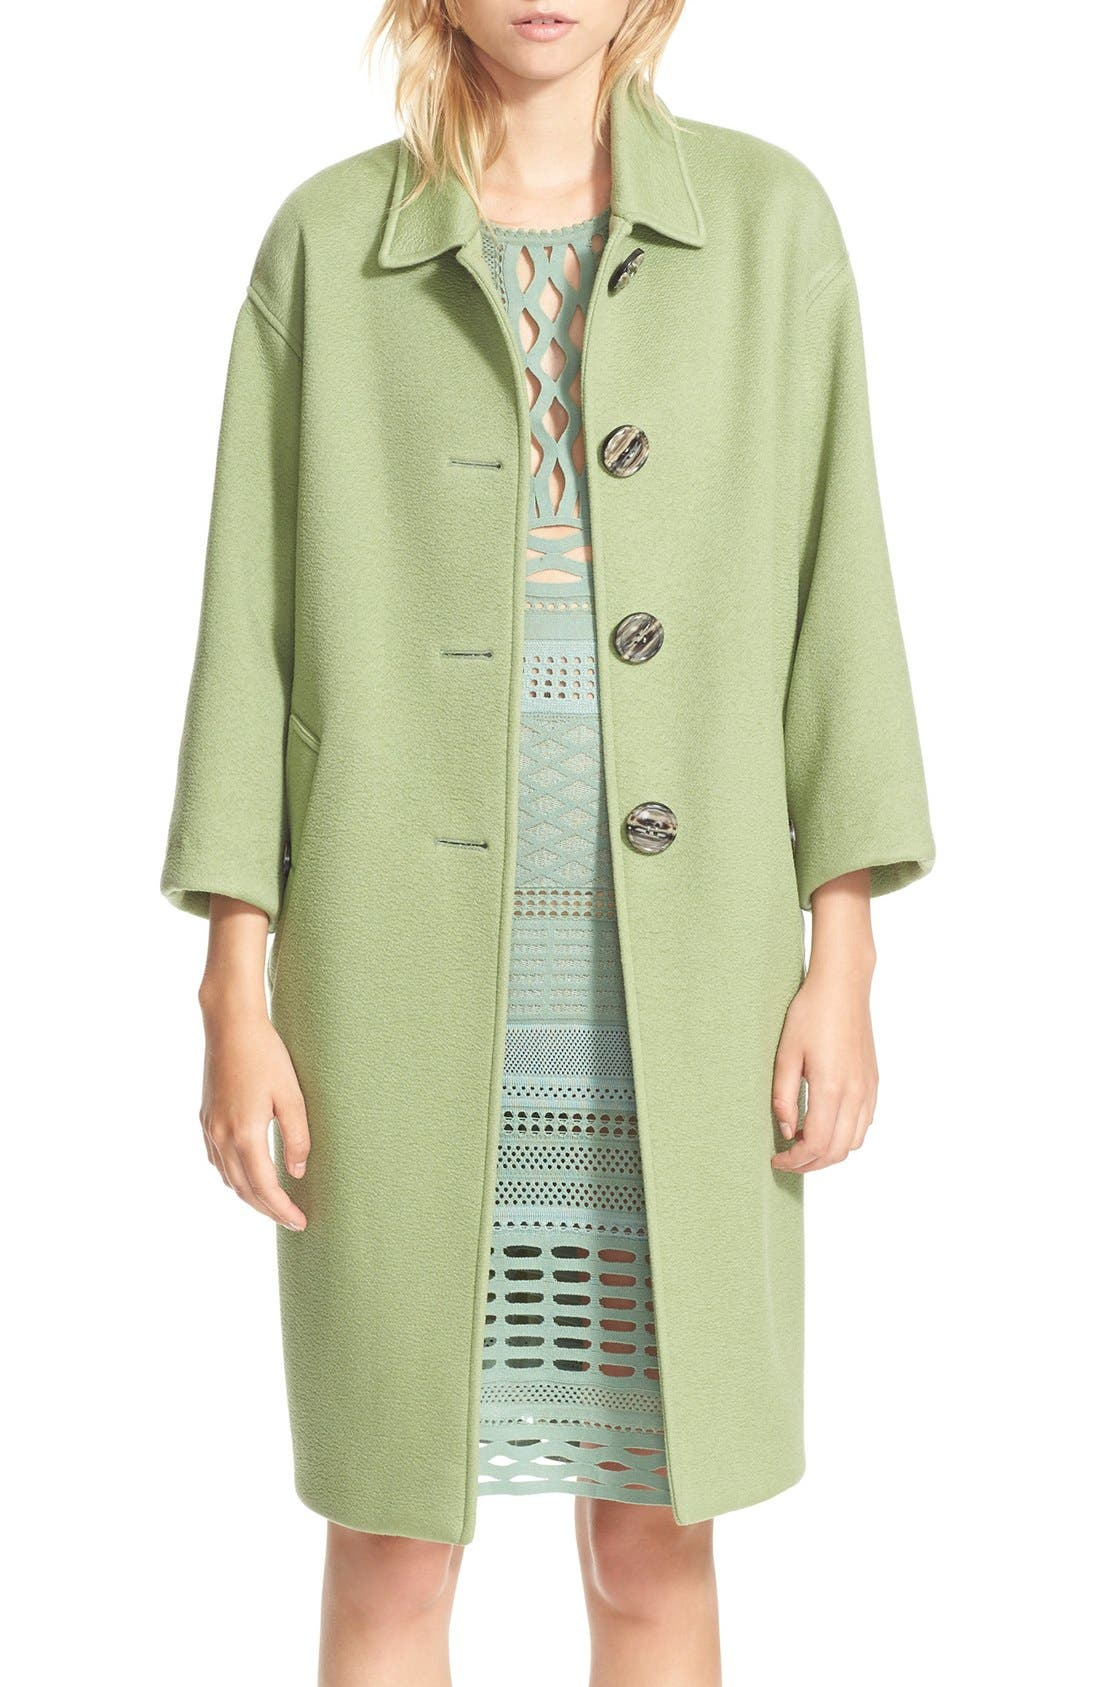 Alternate Image 1 Selected - Burberry Prorsum Cashmere Coat